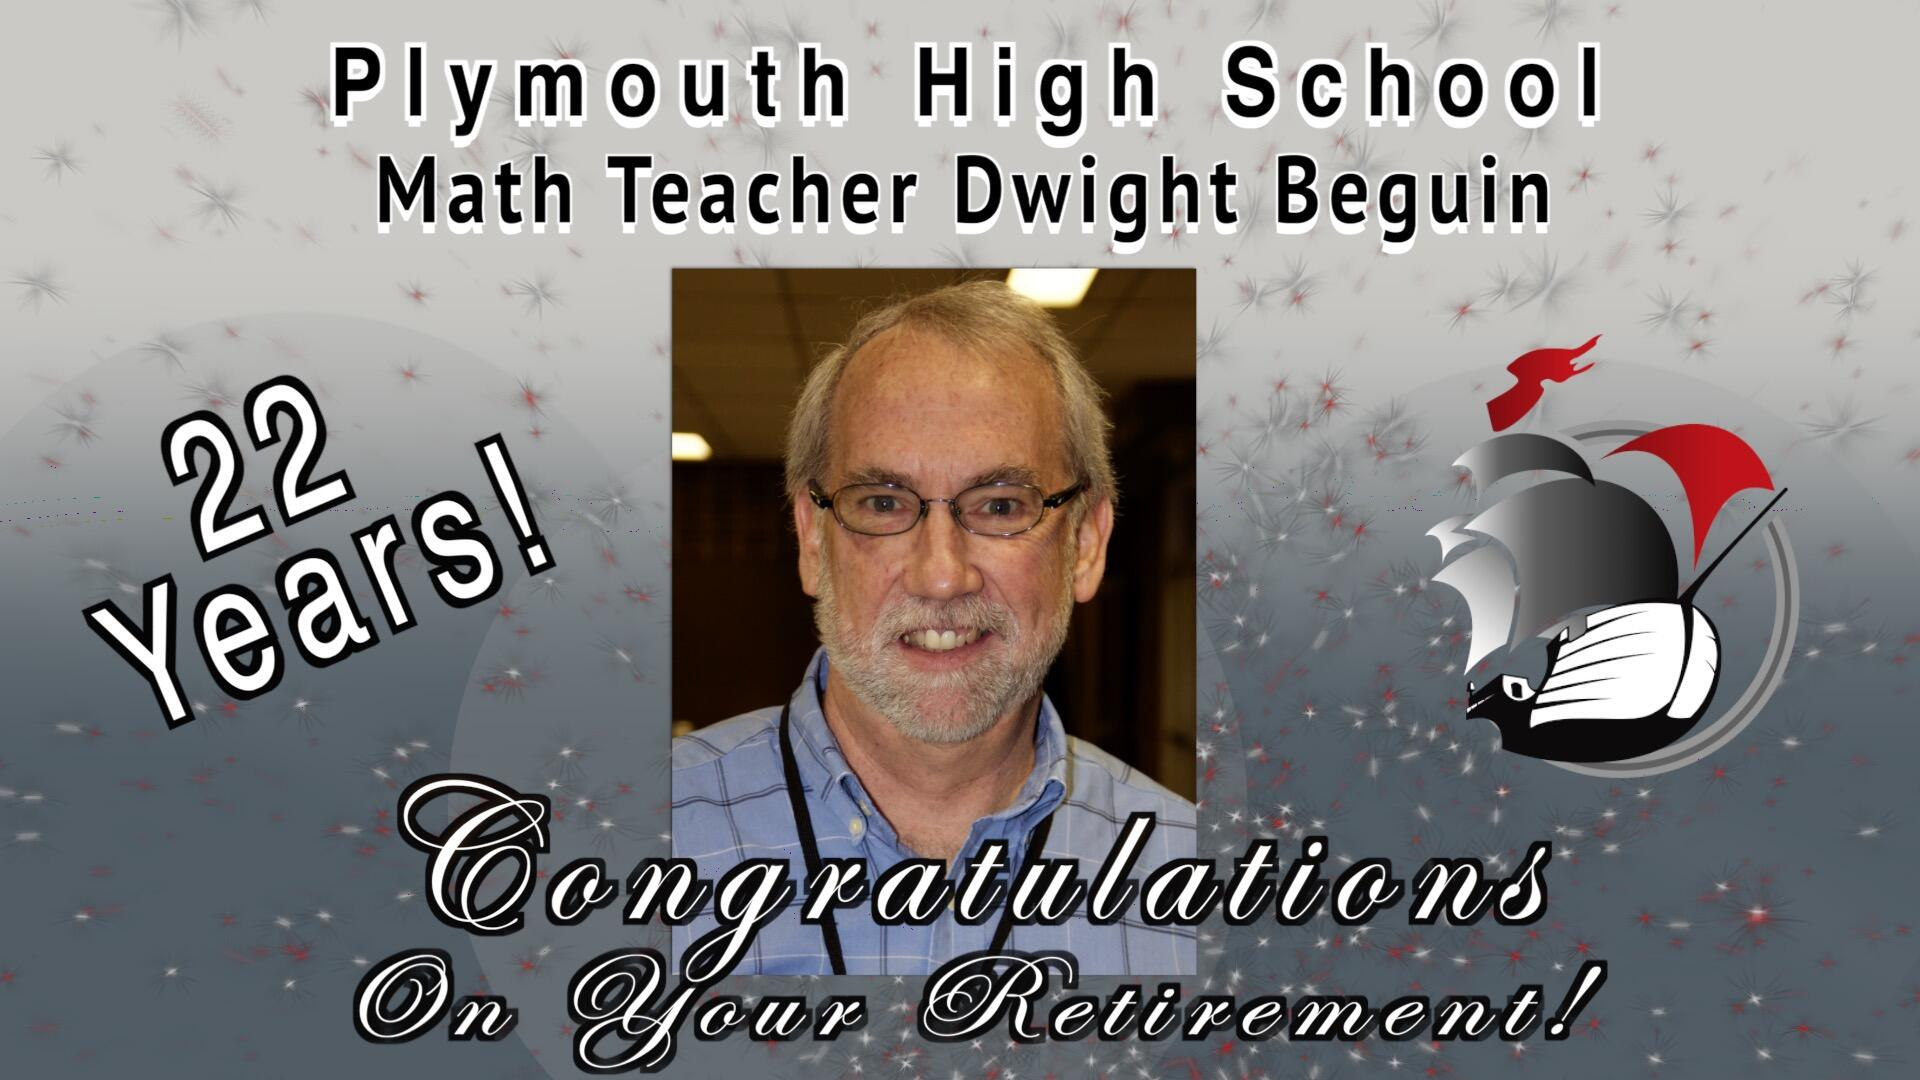 Plymouth High School Math Teacher Dwight Beguin 22 years! Congratulations on your retirement! photo and PHS ship logo